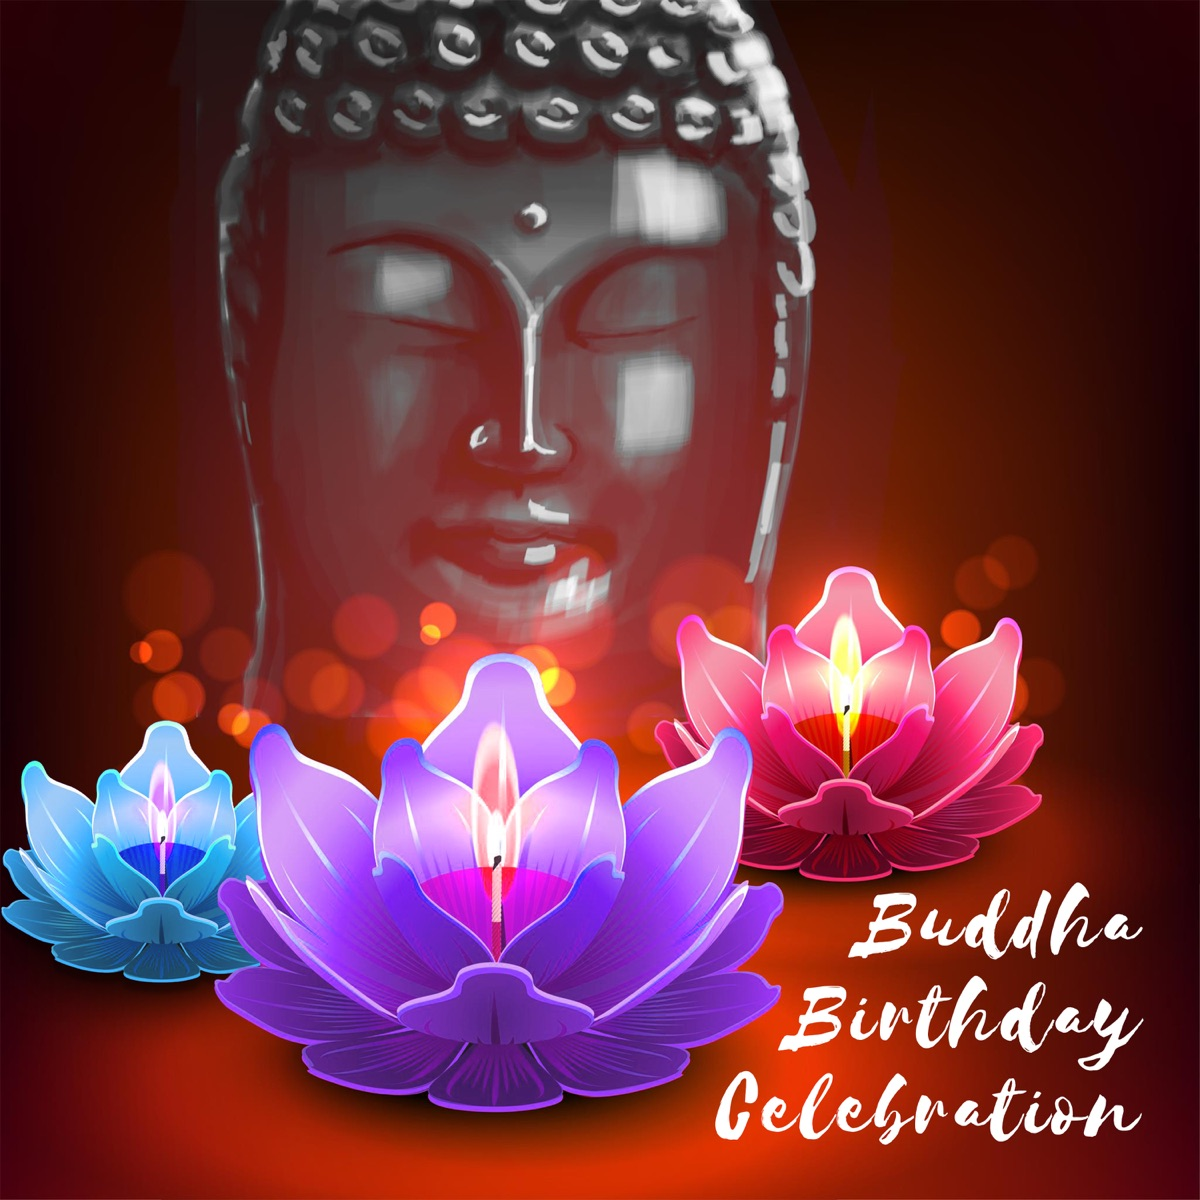 Buddha Birthday Celebration - Asian Music for Meditation